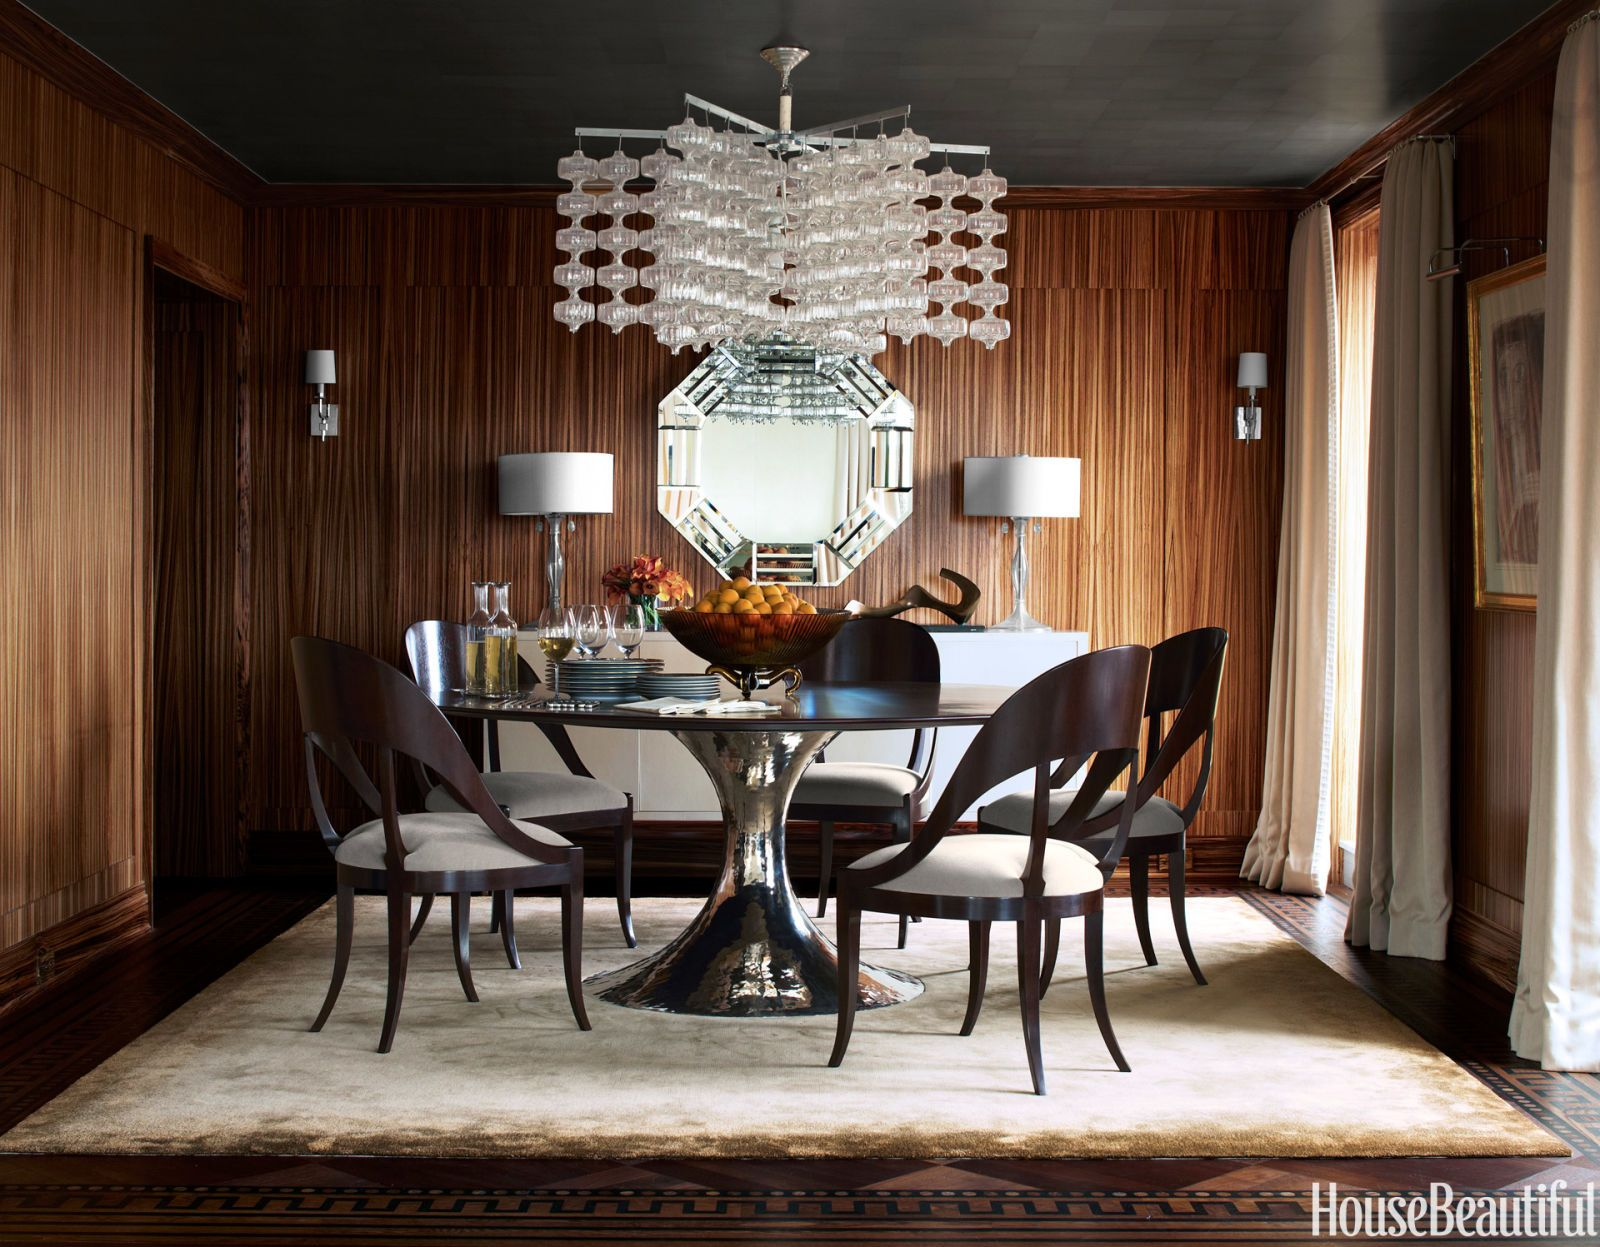 15 Dining Room Lighting Fixtures Stylish Ideas For Dining Room Lights